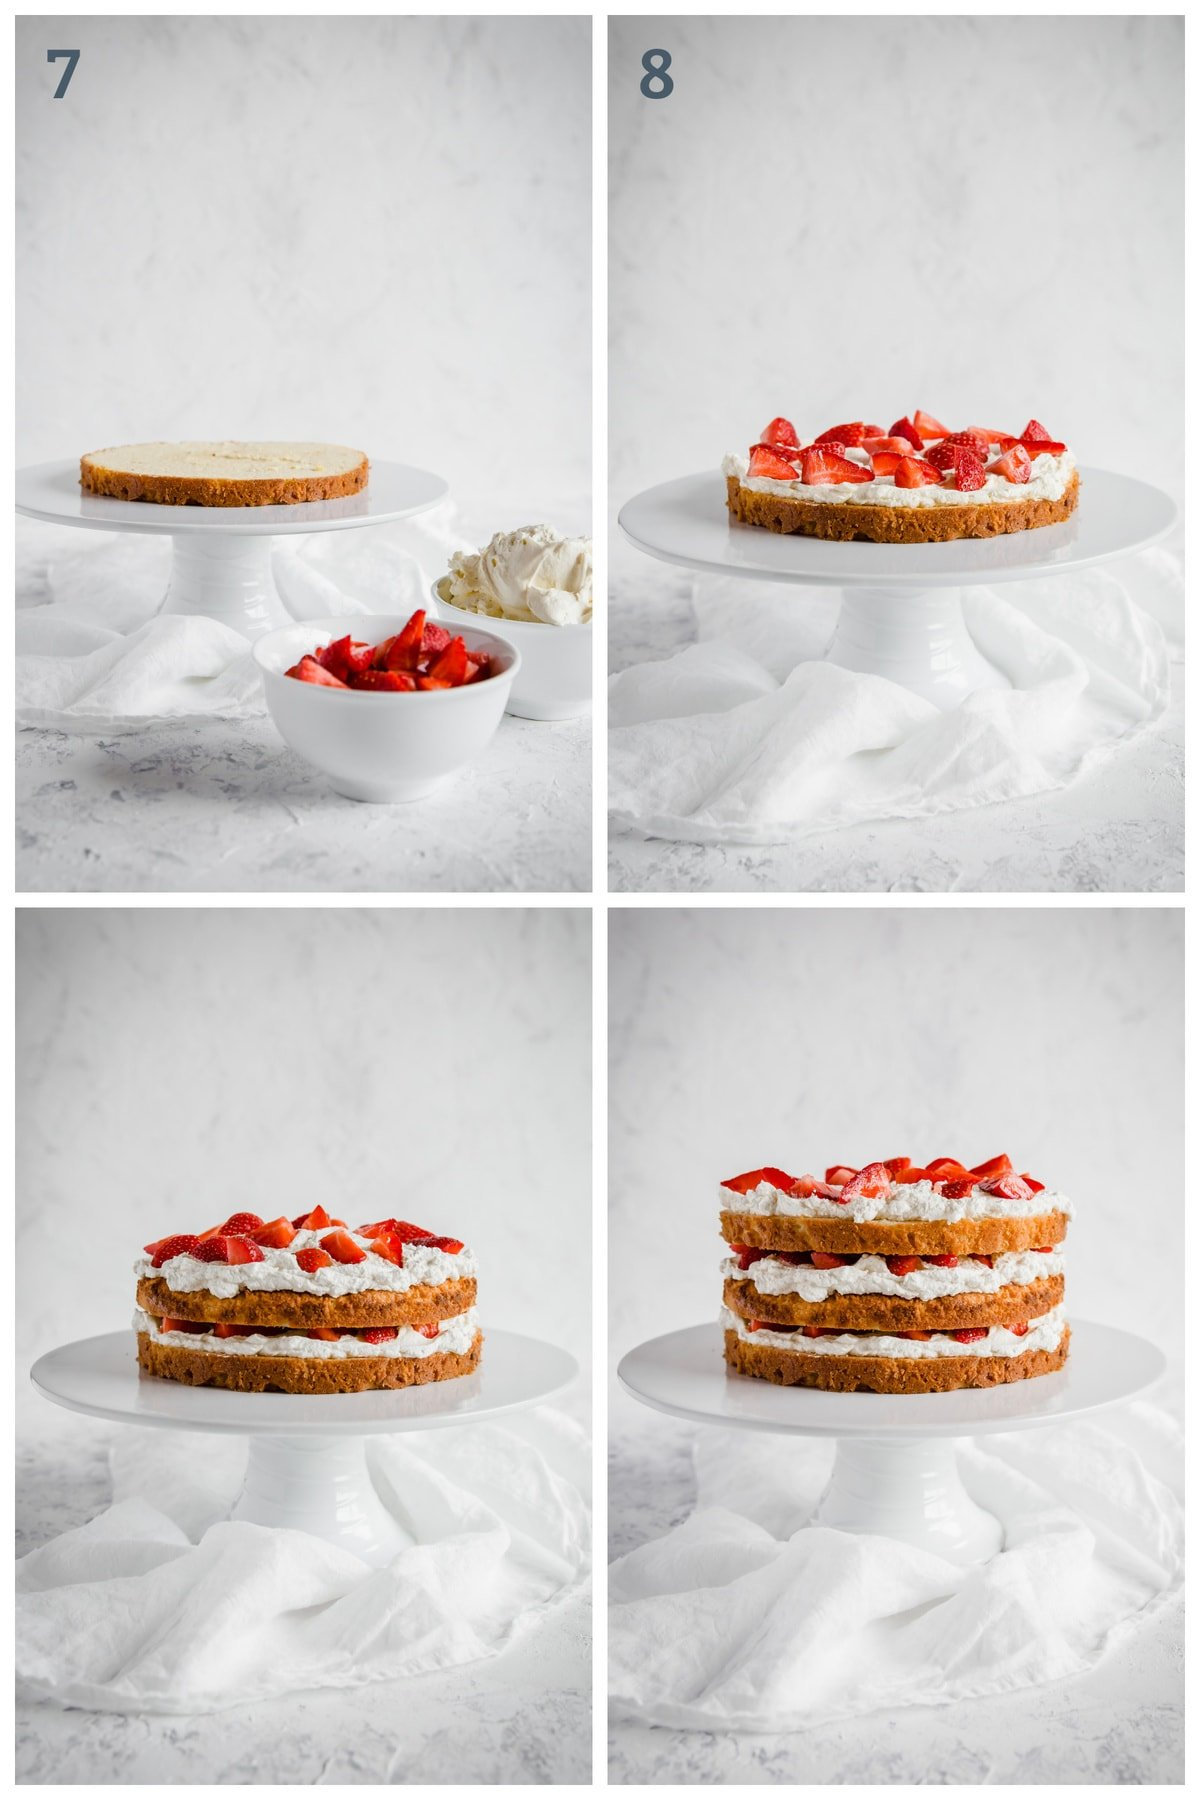 strawberry shortcake being stacked layer by layer with cake, fresh whipped cream and strawberries